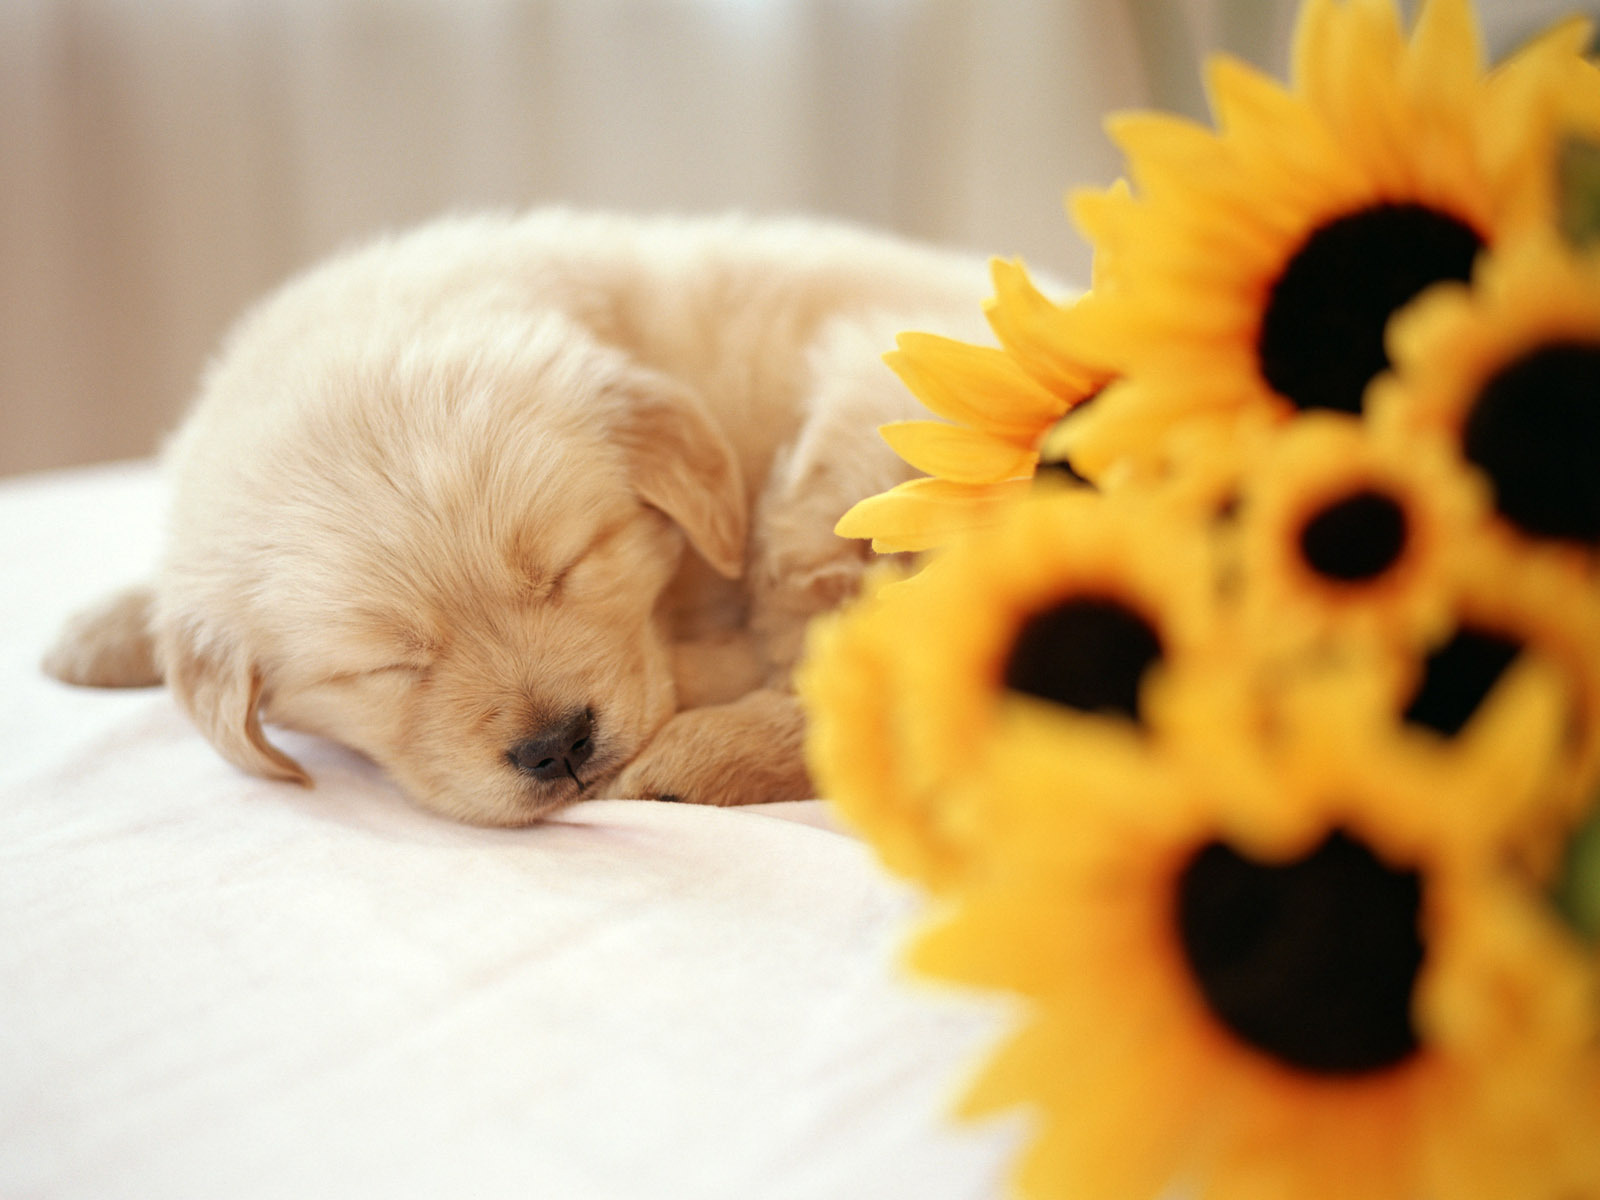 cute puppy picture - photo #29